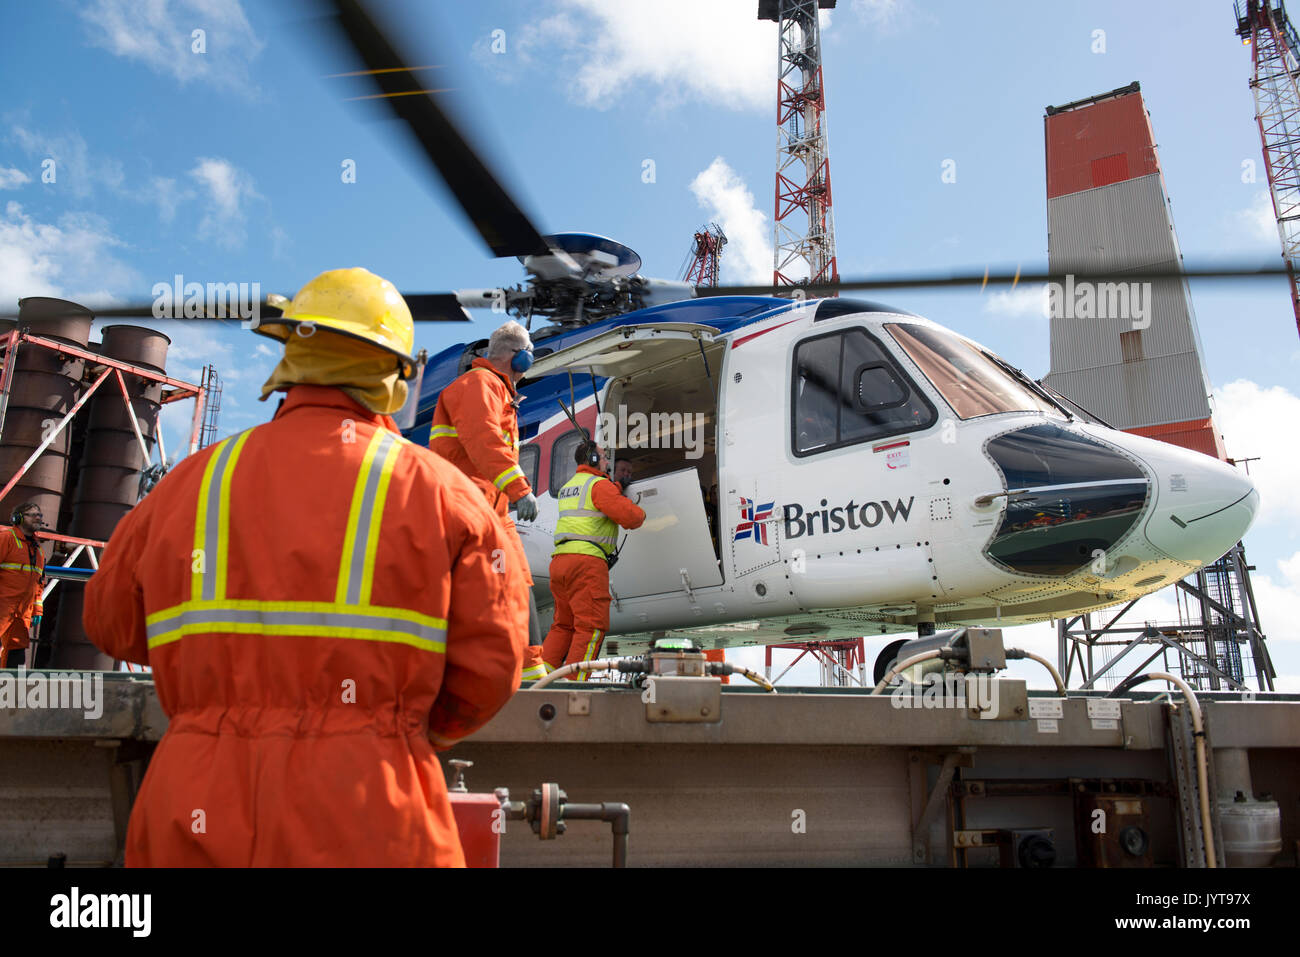 Bristow Helicopter, landing on a north sea oil and gas platform. Helideck team, controlling while passengers disembark. credit: LEE RAMSDEN / ALAMY - Stock Image